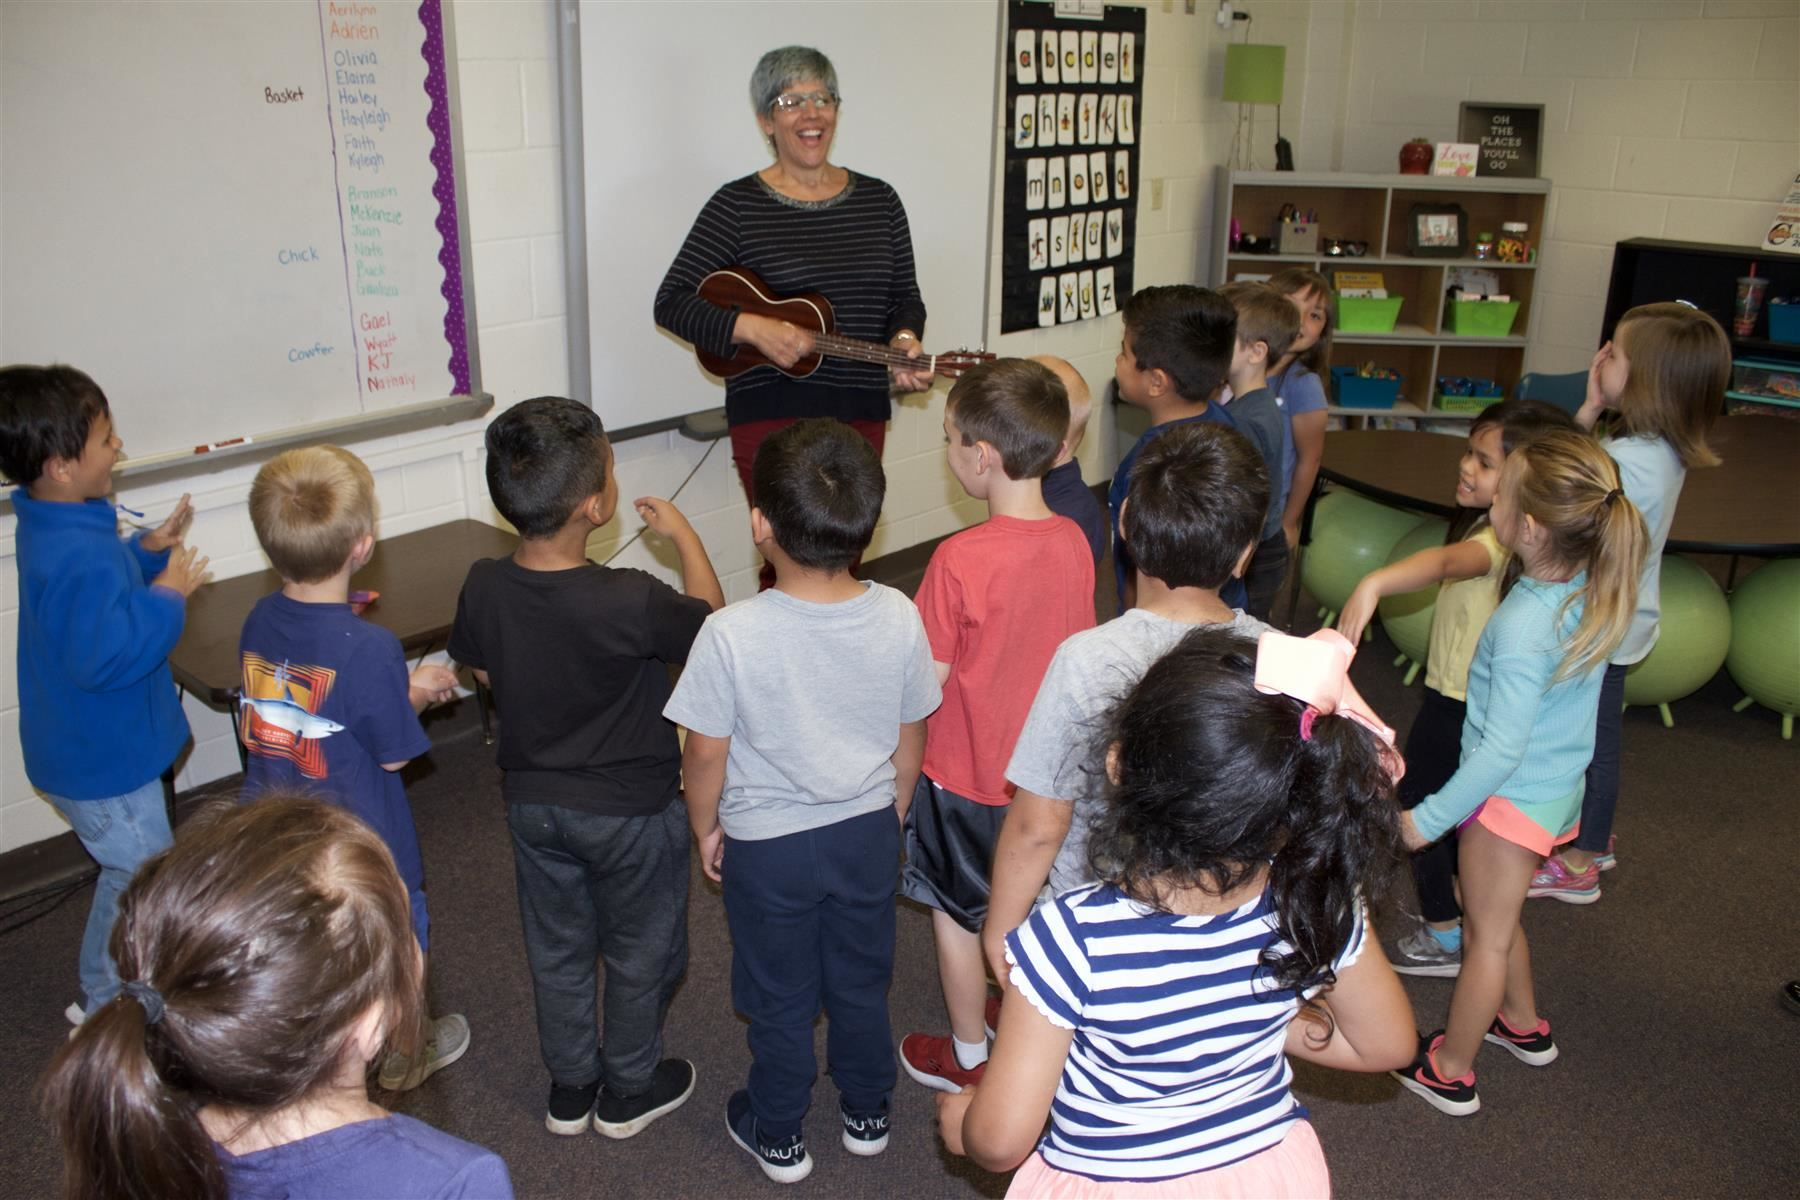 Leslie Cottrell playing her ukulele and singing about the continents with her students.